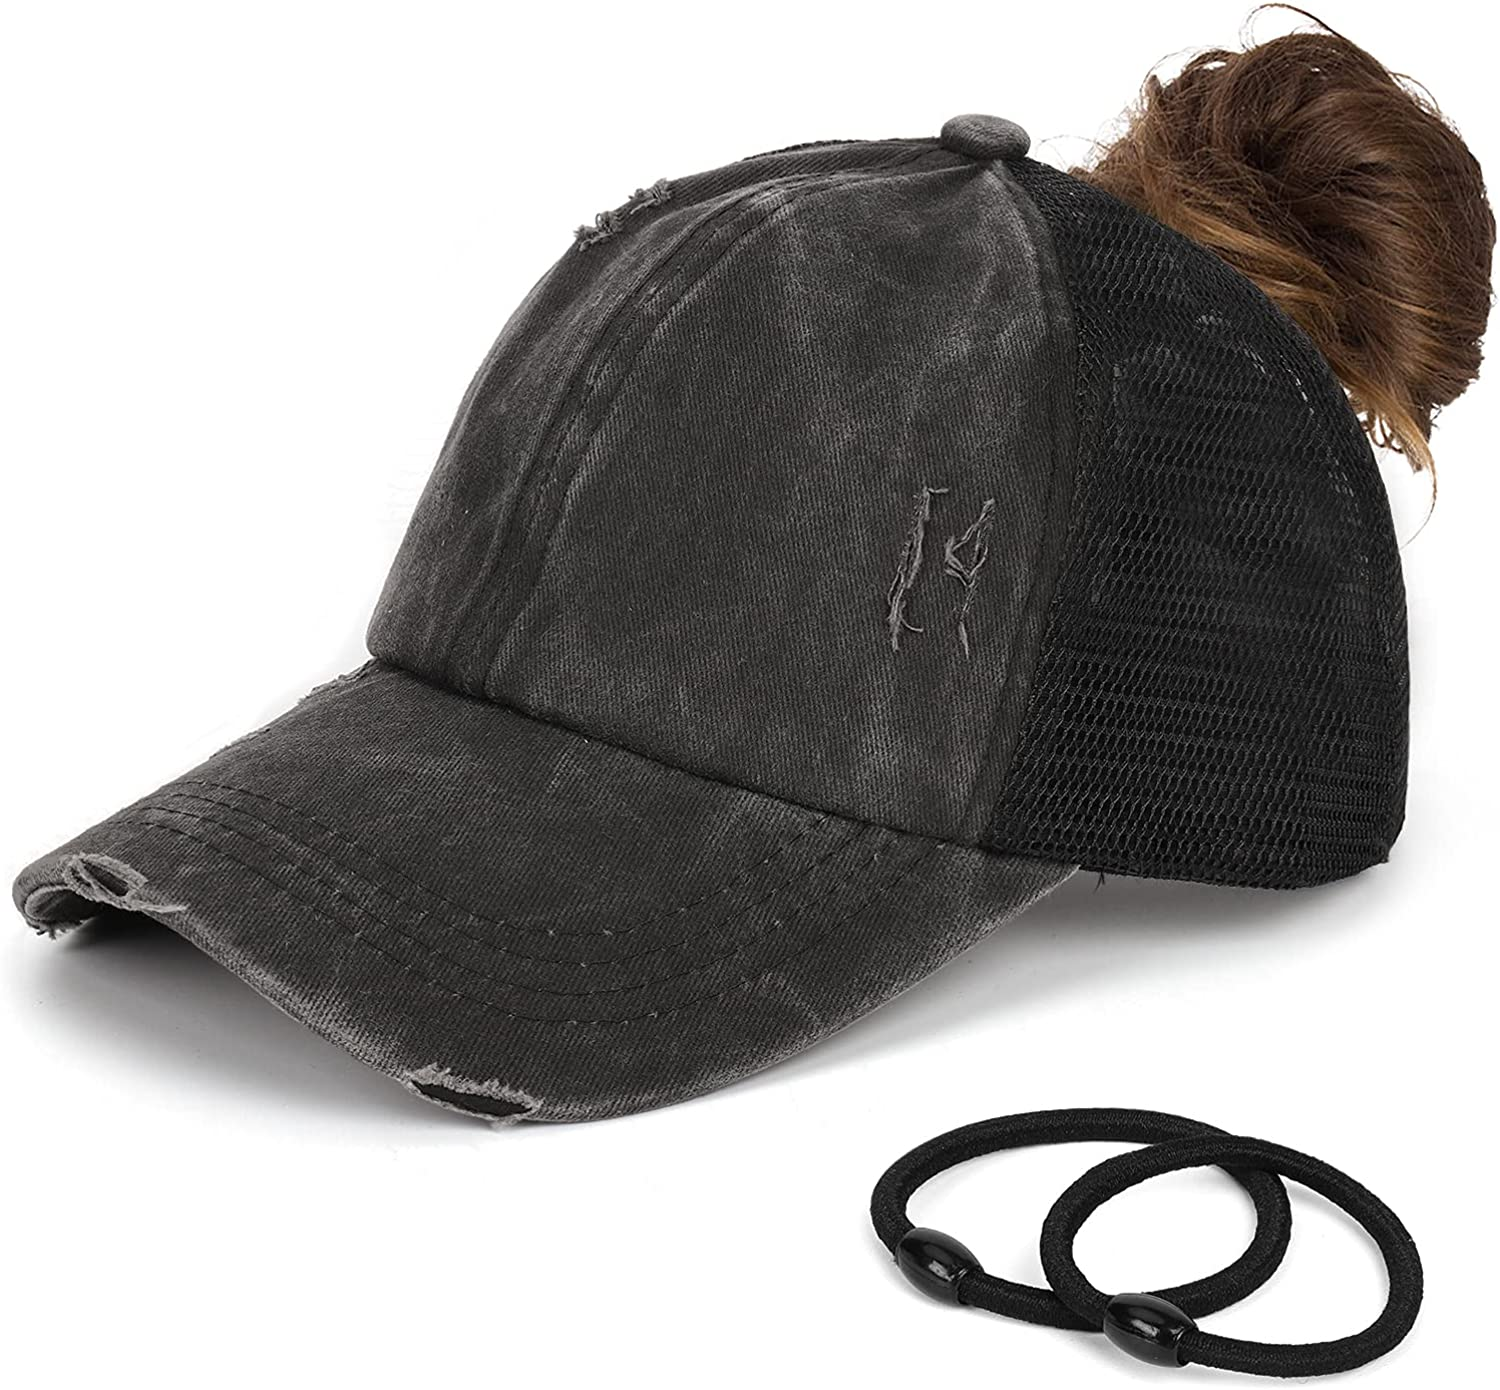 Ponytail Baseball Cap for Women Washed Distressed Truker Hat Criss Mesh Cool Breathable Messy Bun Ponycap Outdoor